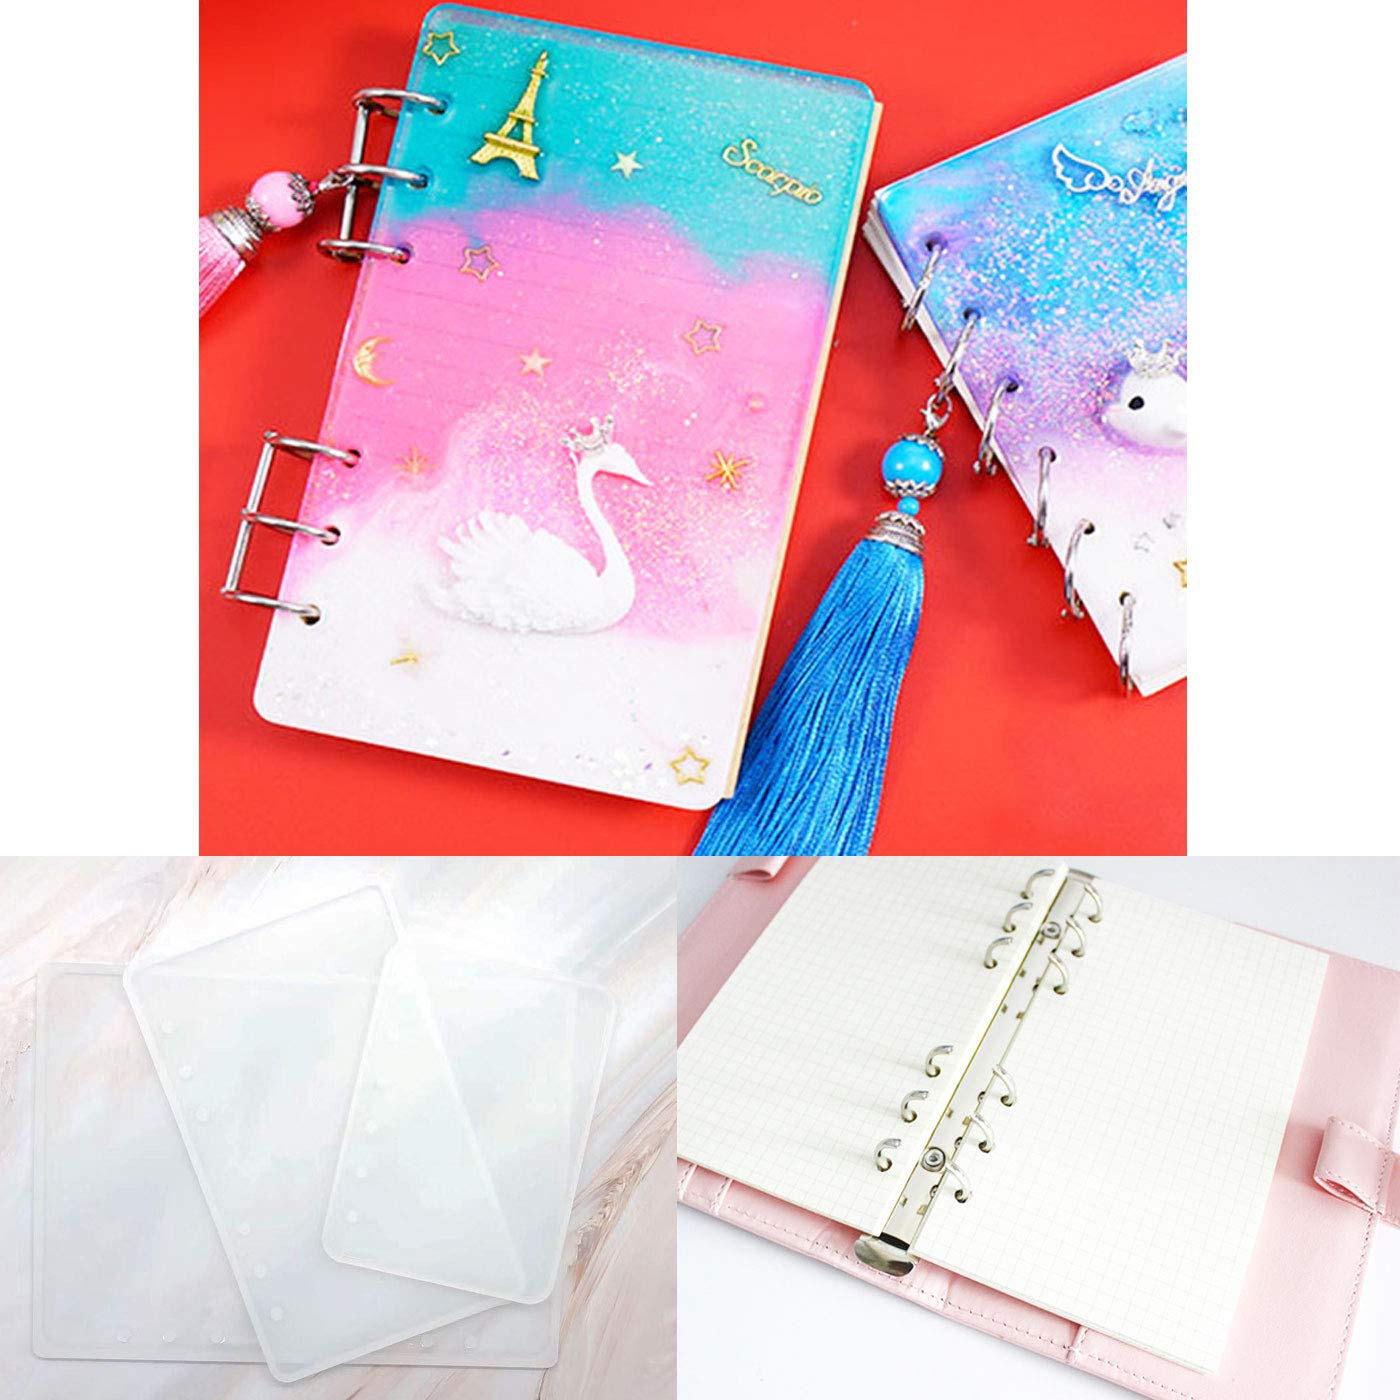 Markeny 3 Pieces Notebook Cover Resin Casting Molds for A5 A6 A7 for Notebook Epoxy Resin DIY